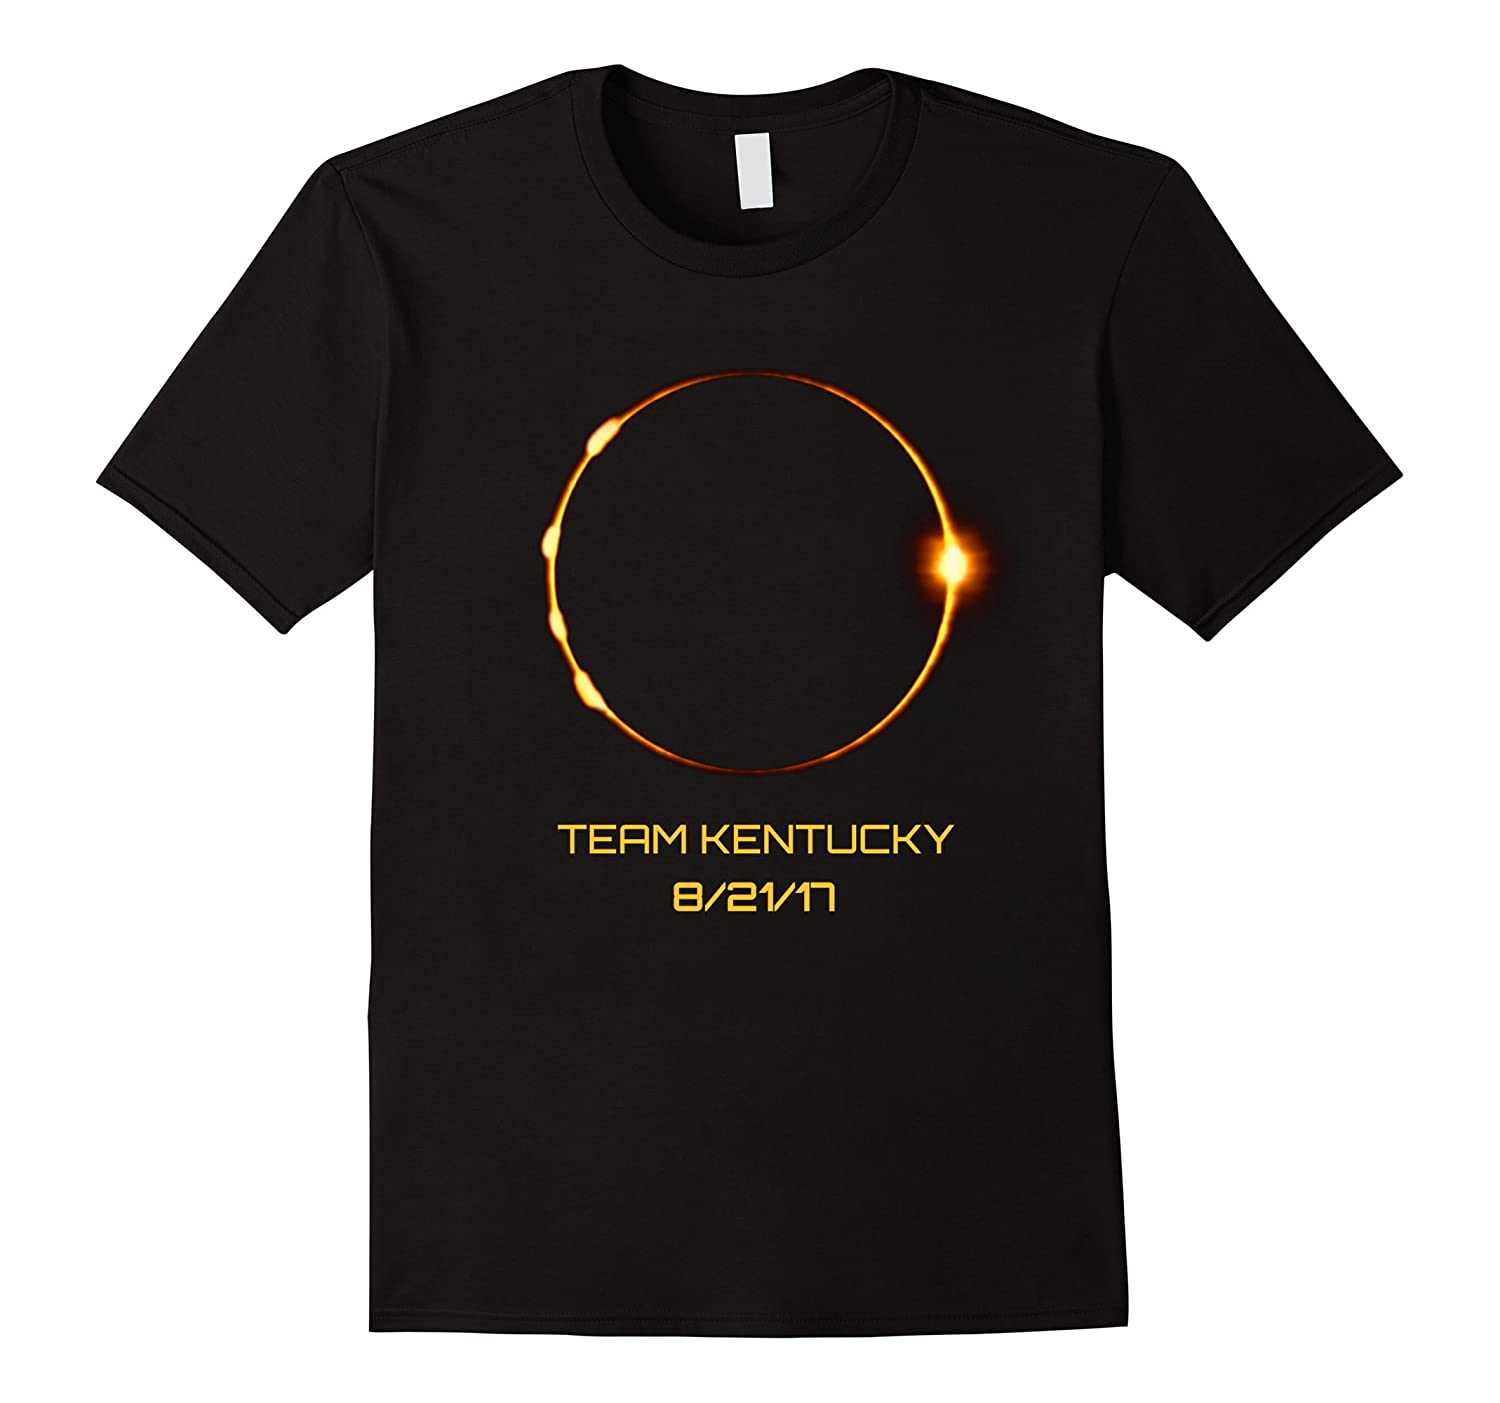 Solar Eclipse Team Kentucky TShirt for 21 August 2017